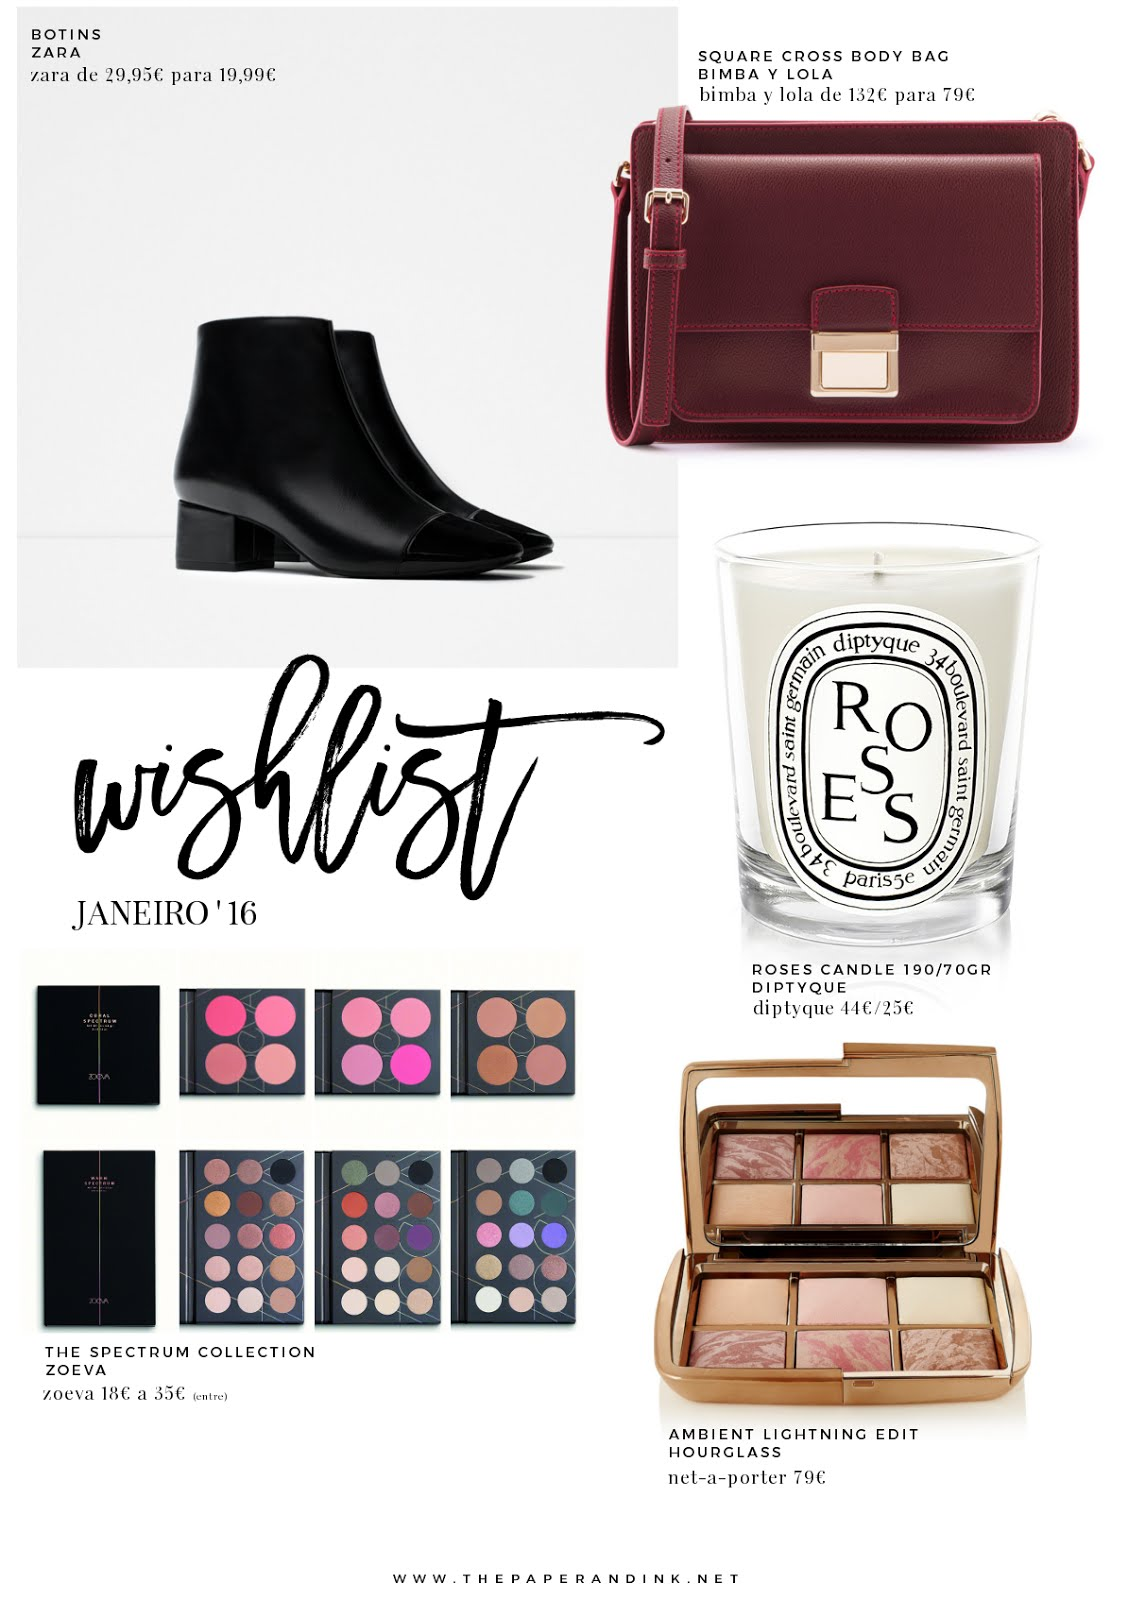 bimba y lola - zara - zoeva - diptyque - hourglass - wishlist - january - janeiro - 2016 - the paper and ink